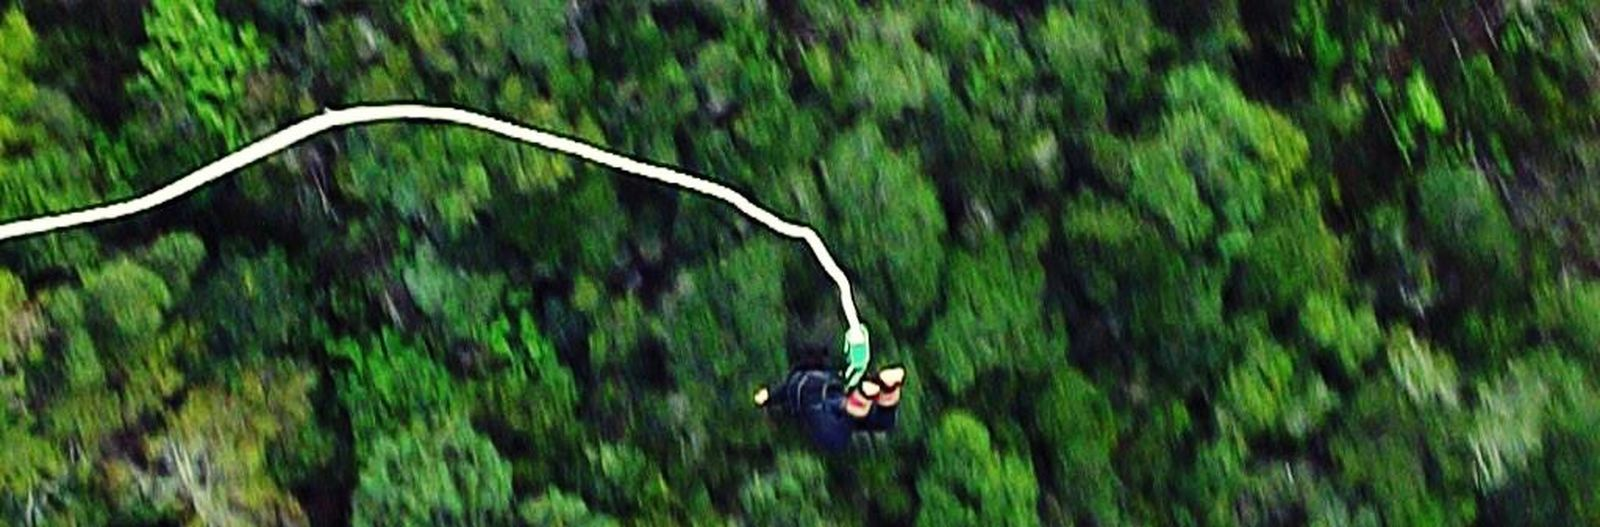 World's Highest Bungy Jump  That's Me